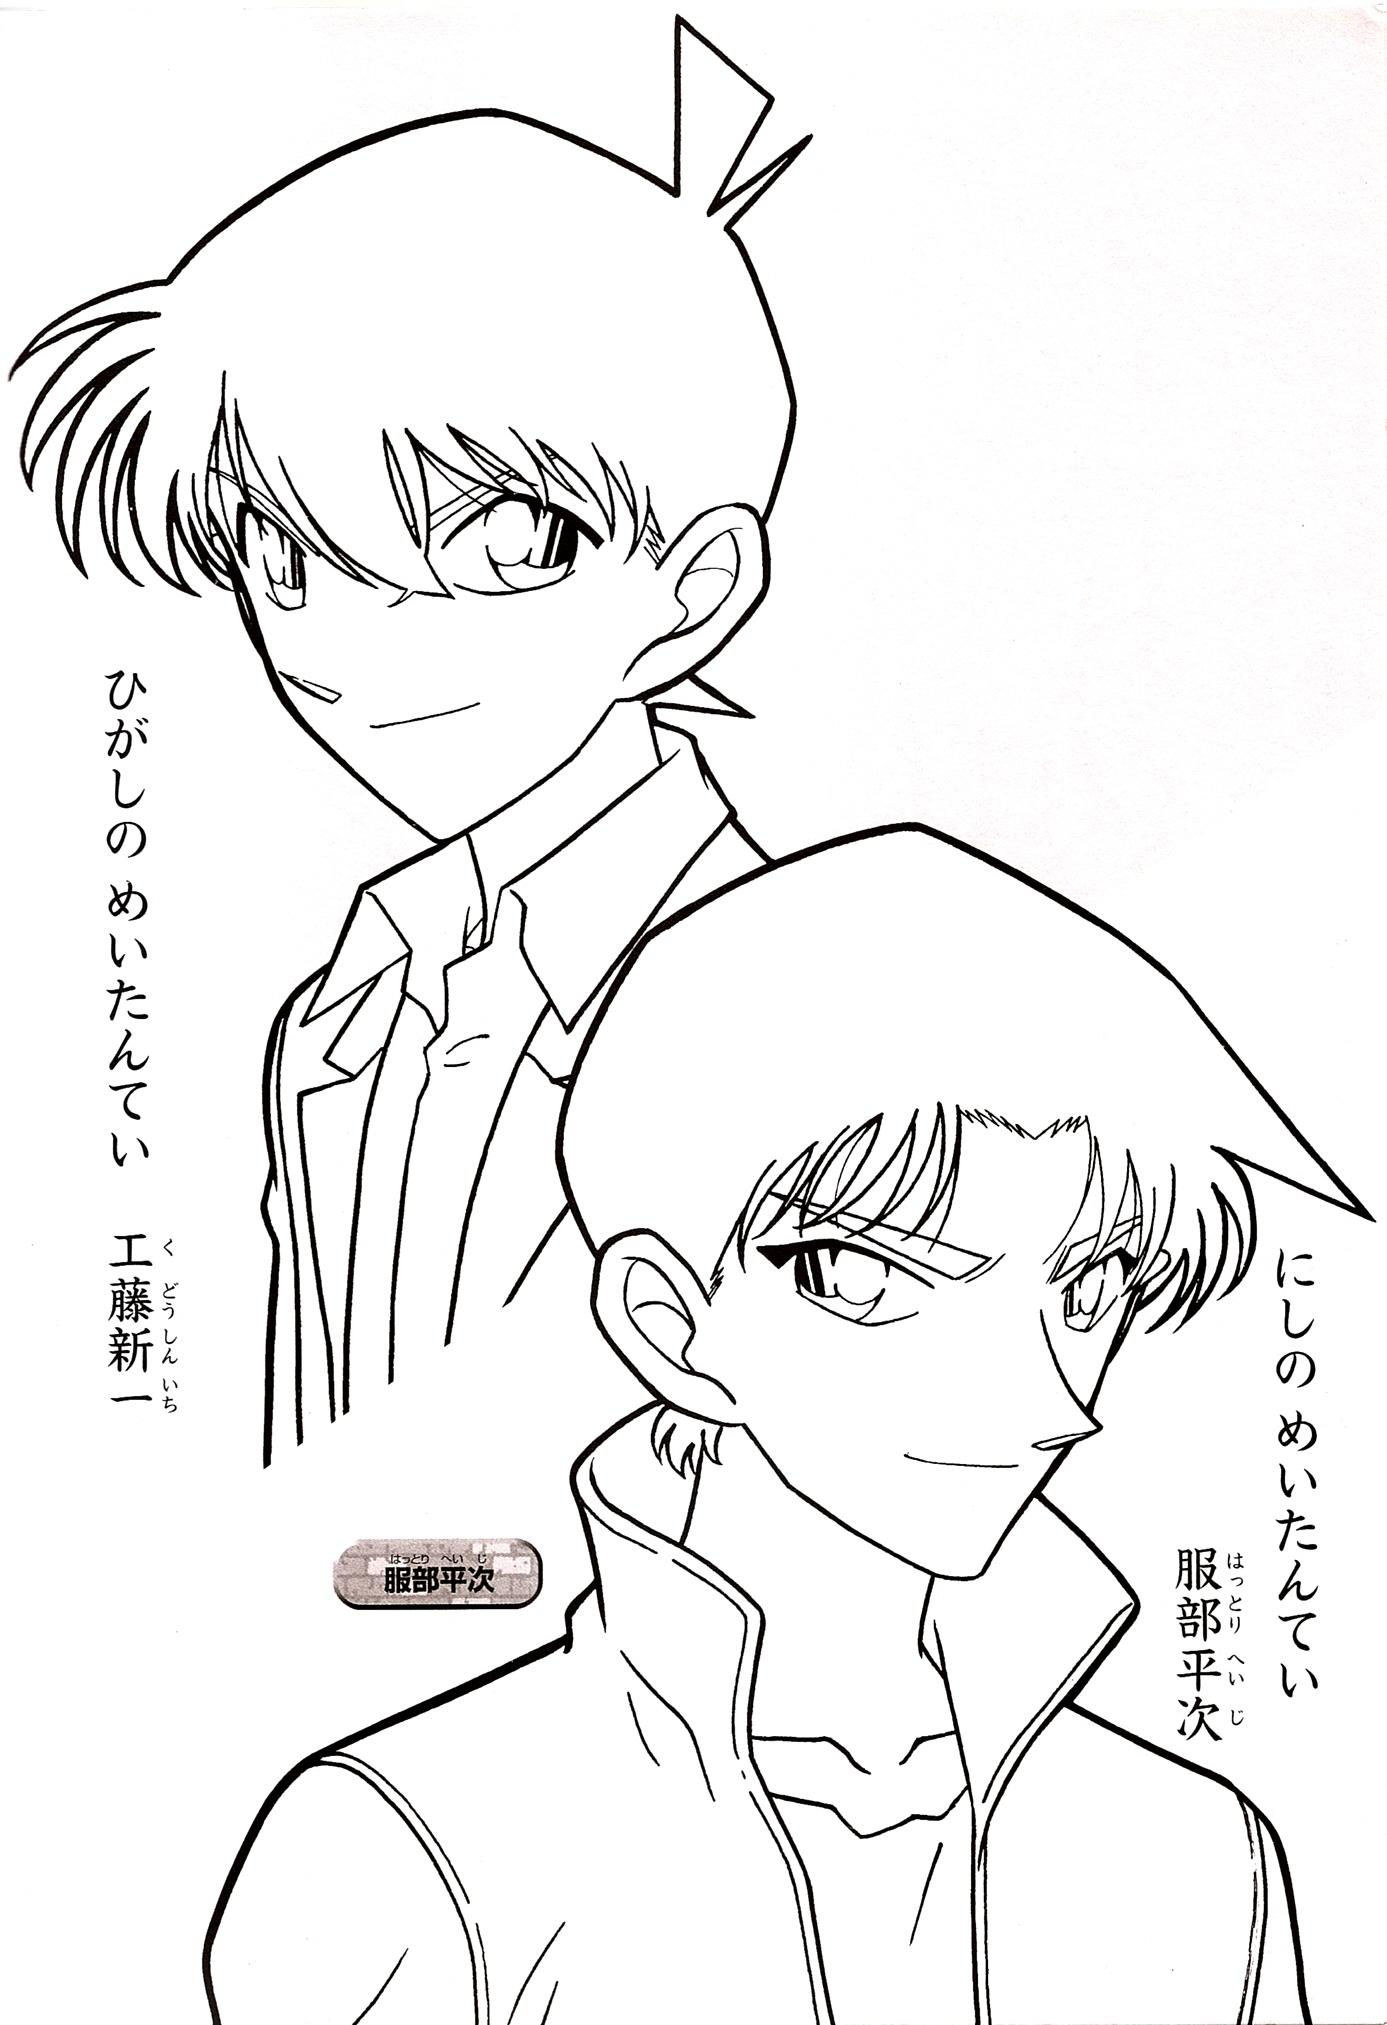 coloring pages of decetive - photo#24